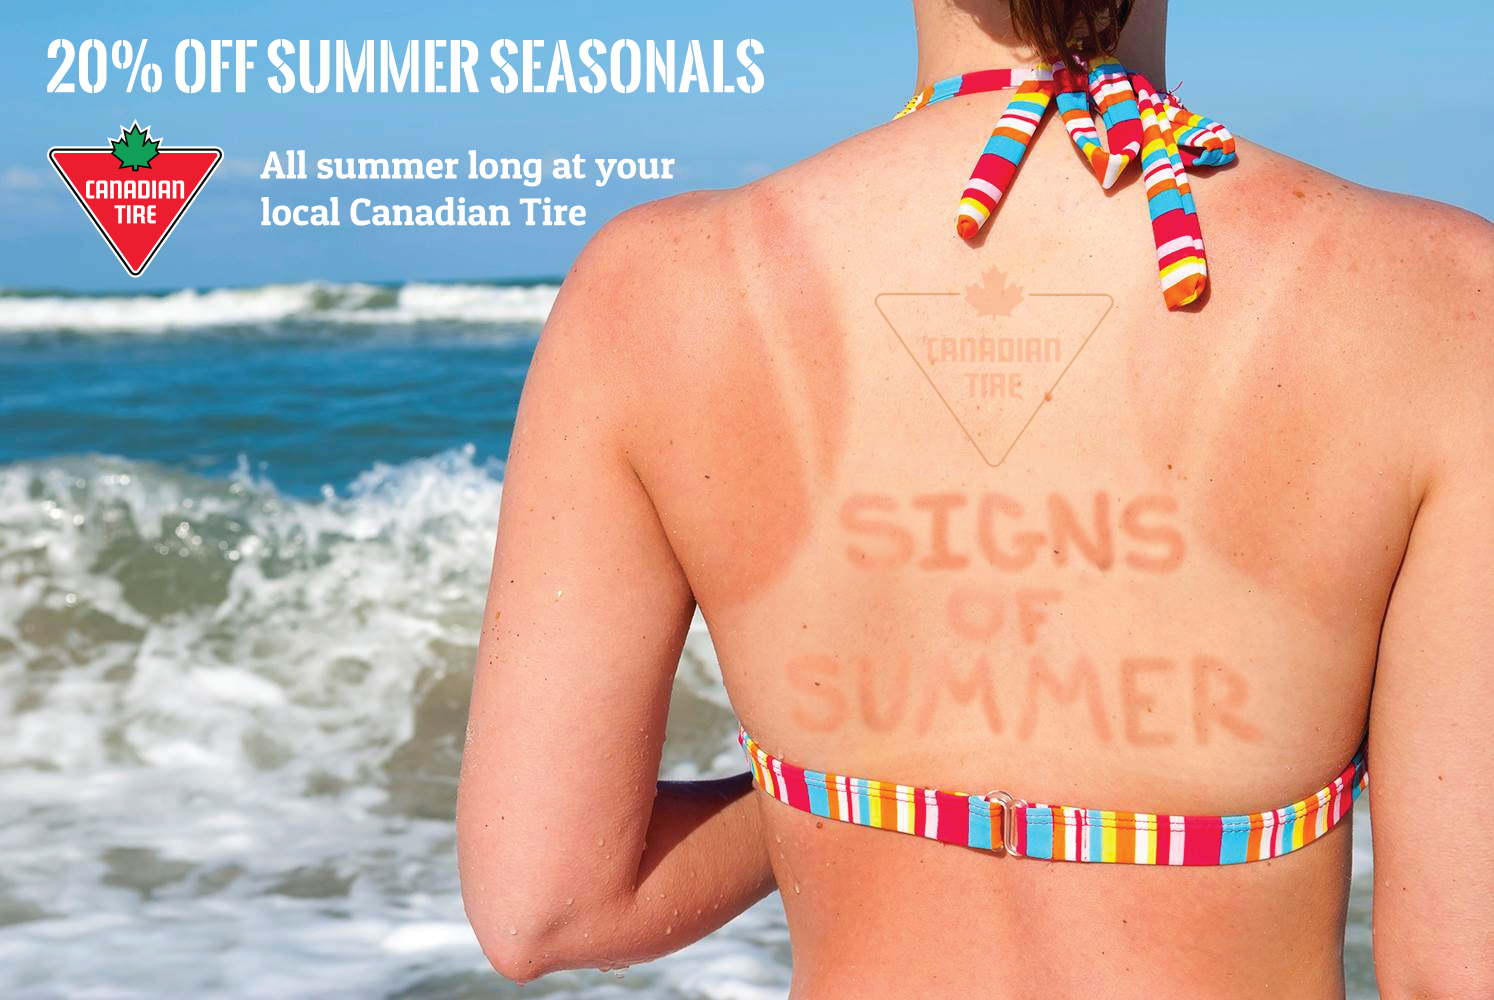 canadian-tire-tan-lines-signs-of-summer